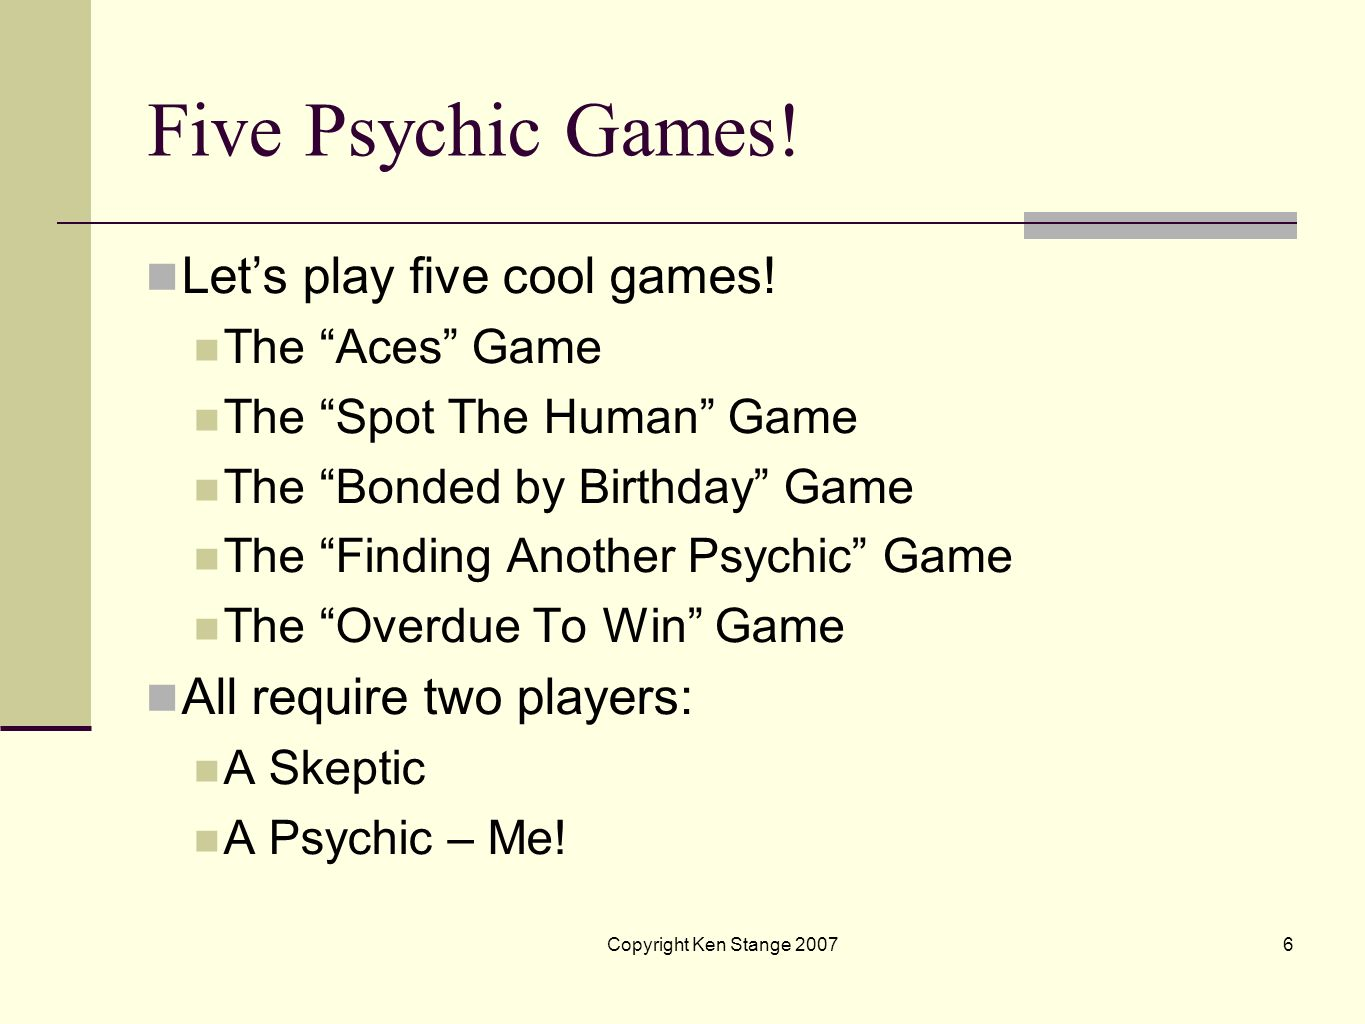 Five Psychic Games! Let's play five cool games!